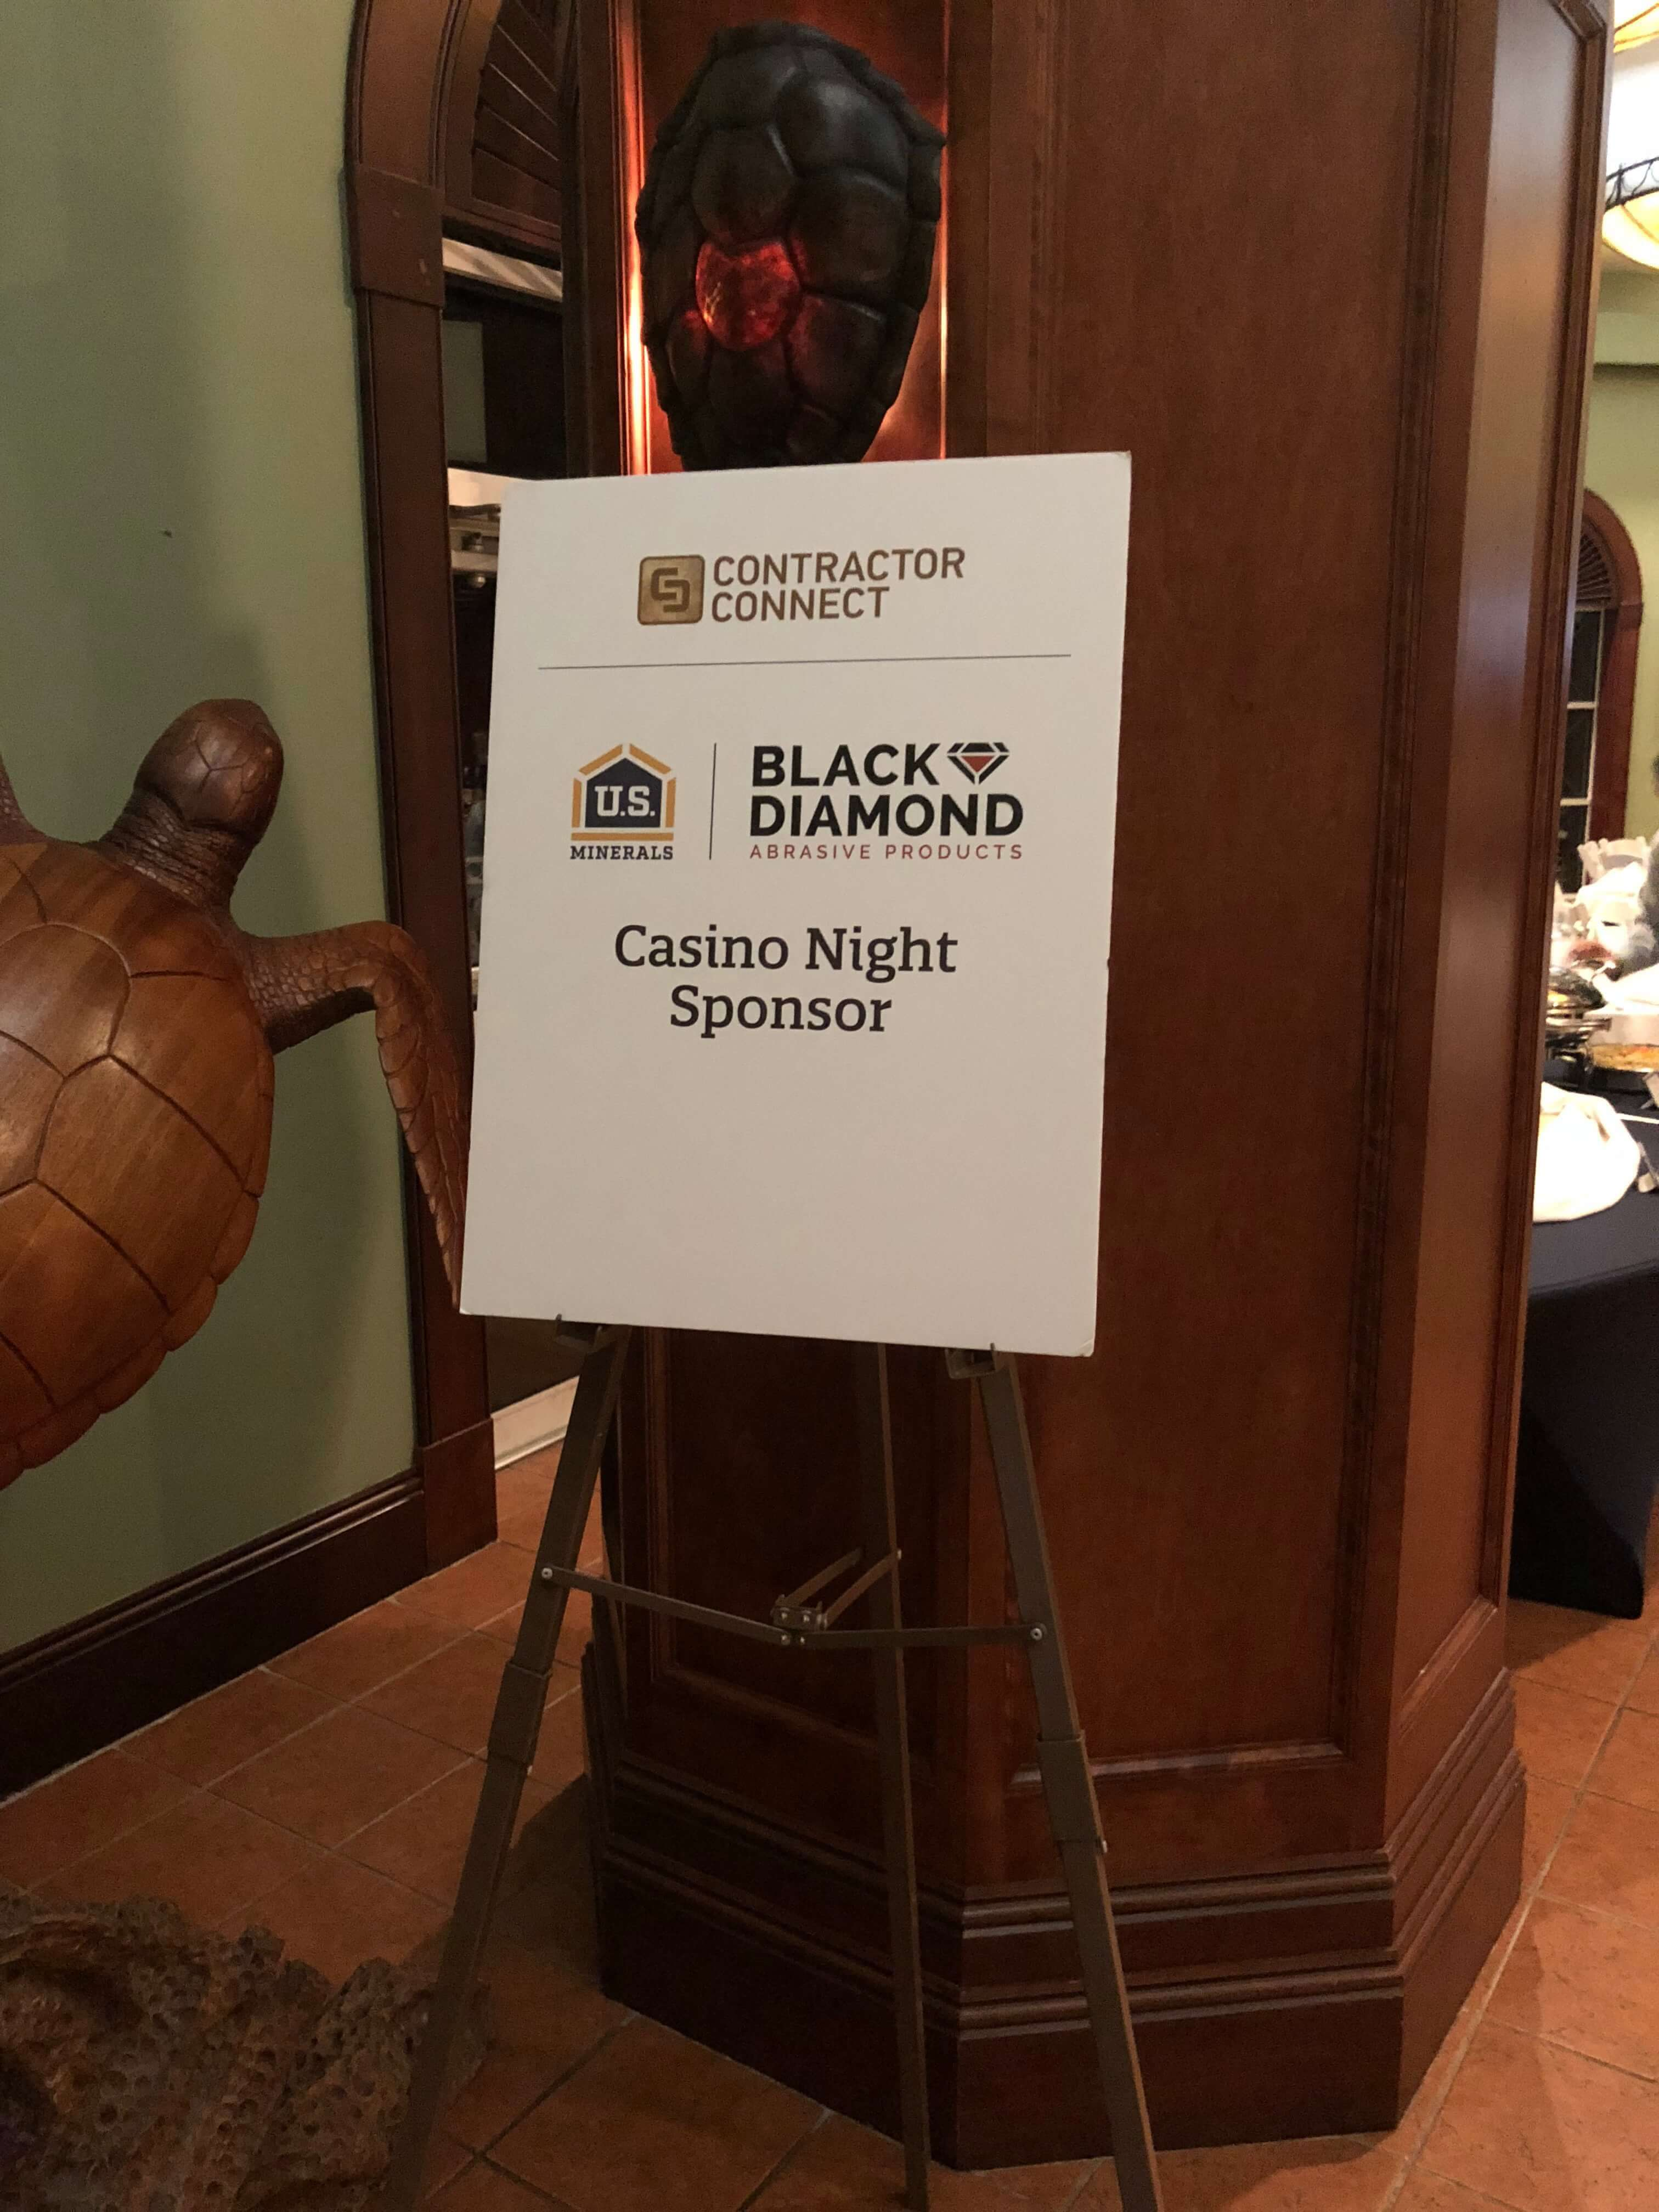 Black Diamond Sponsors Casino Night at Contractor Connect